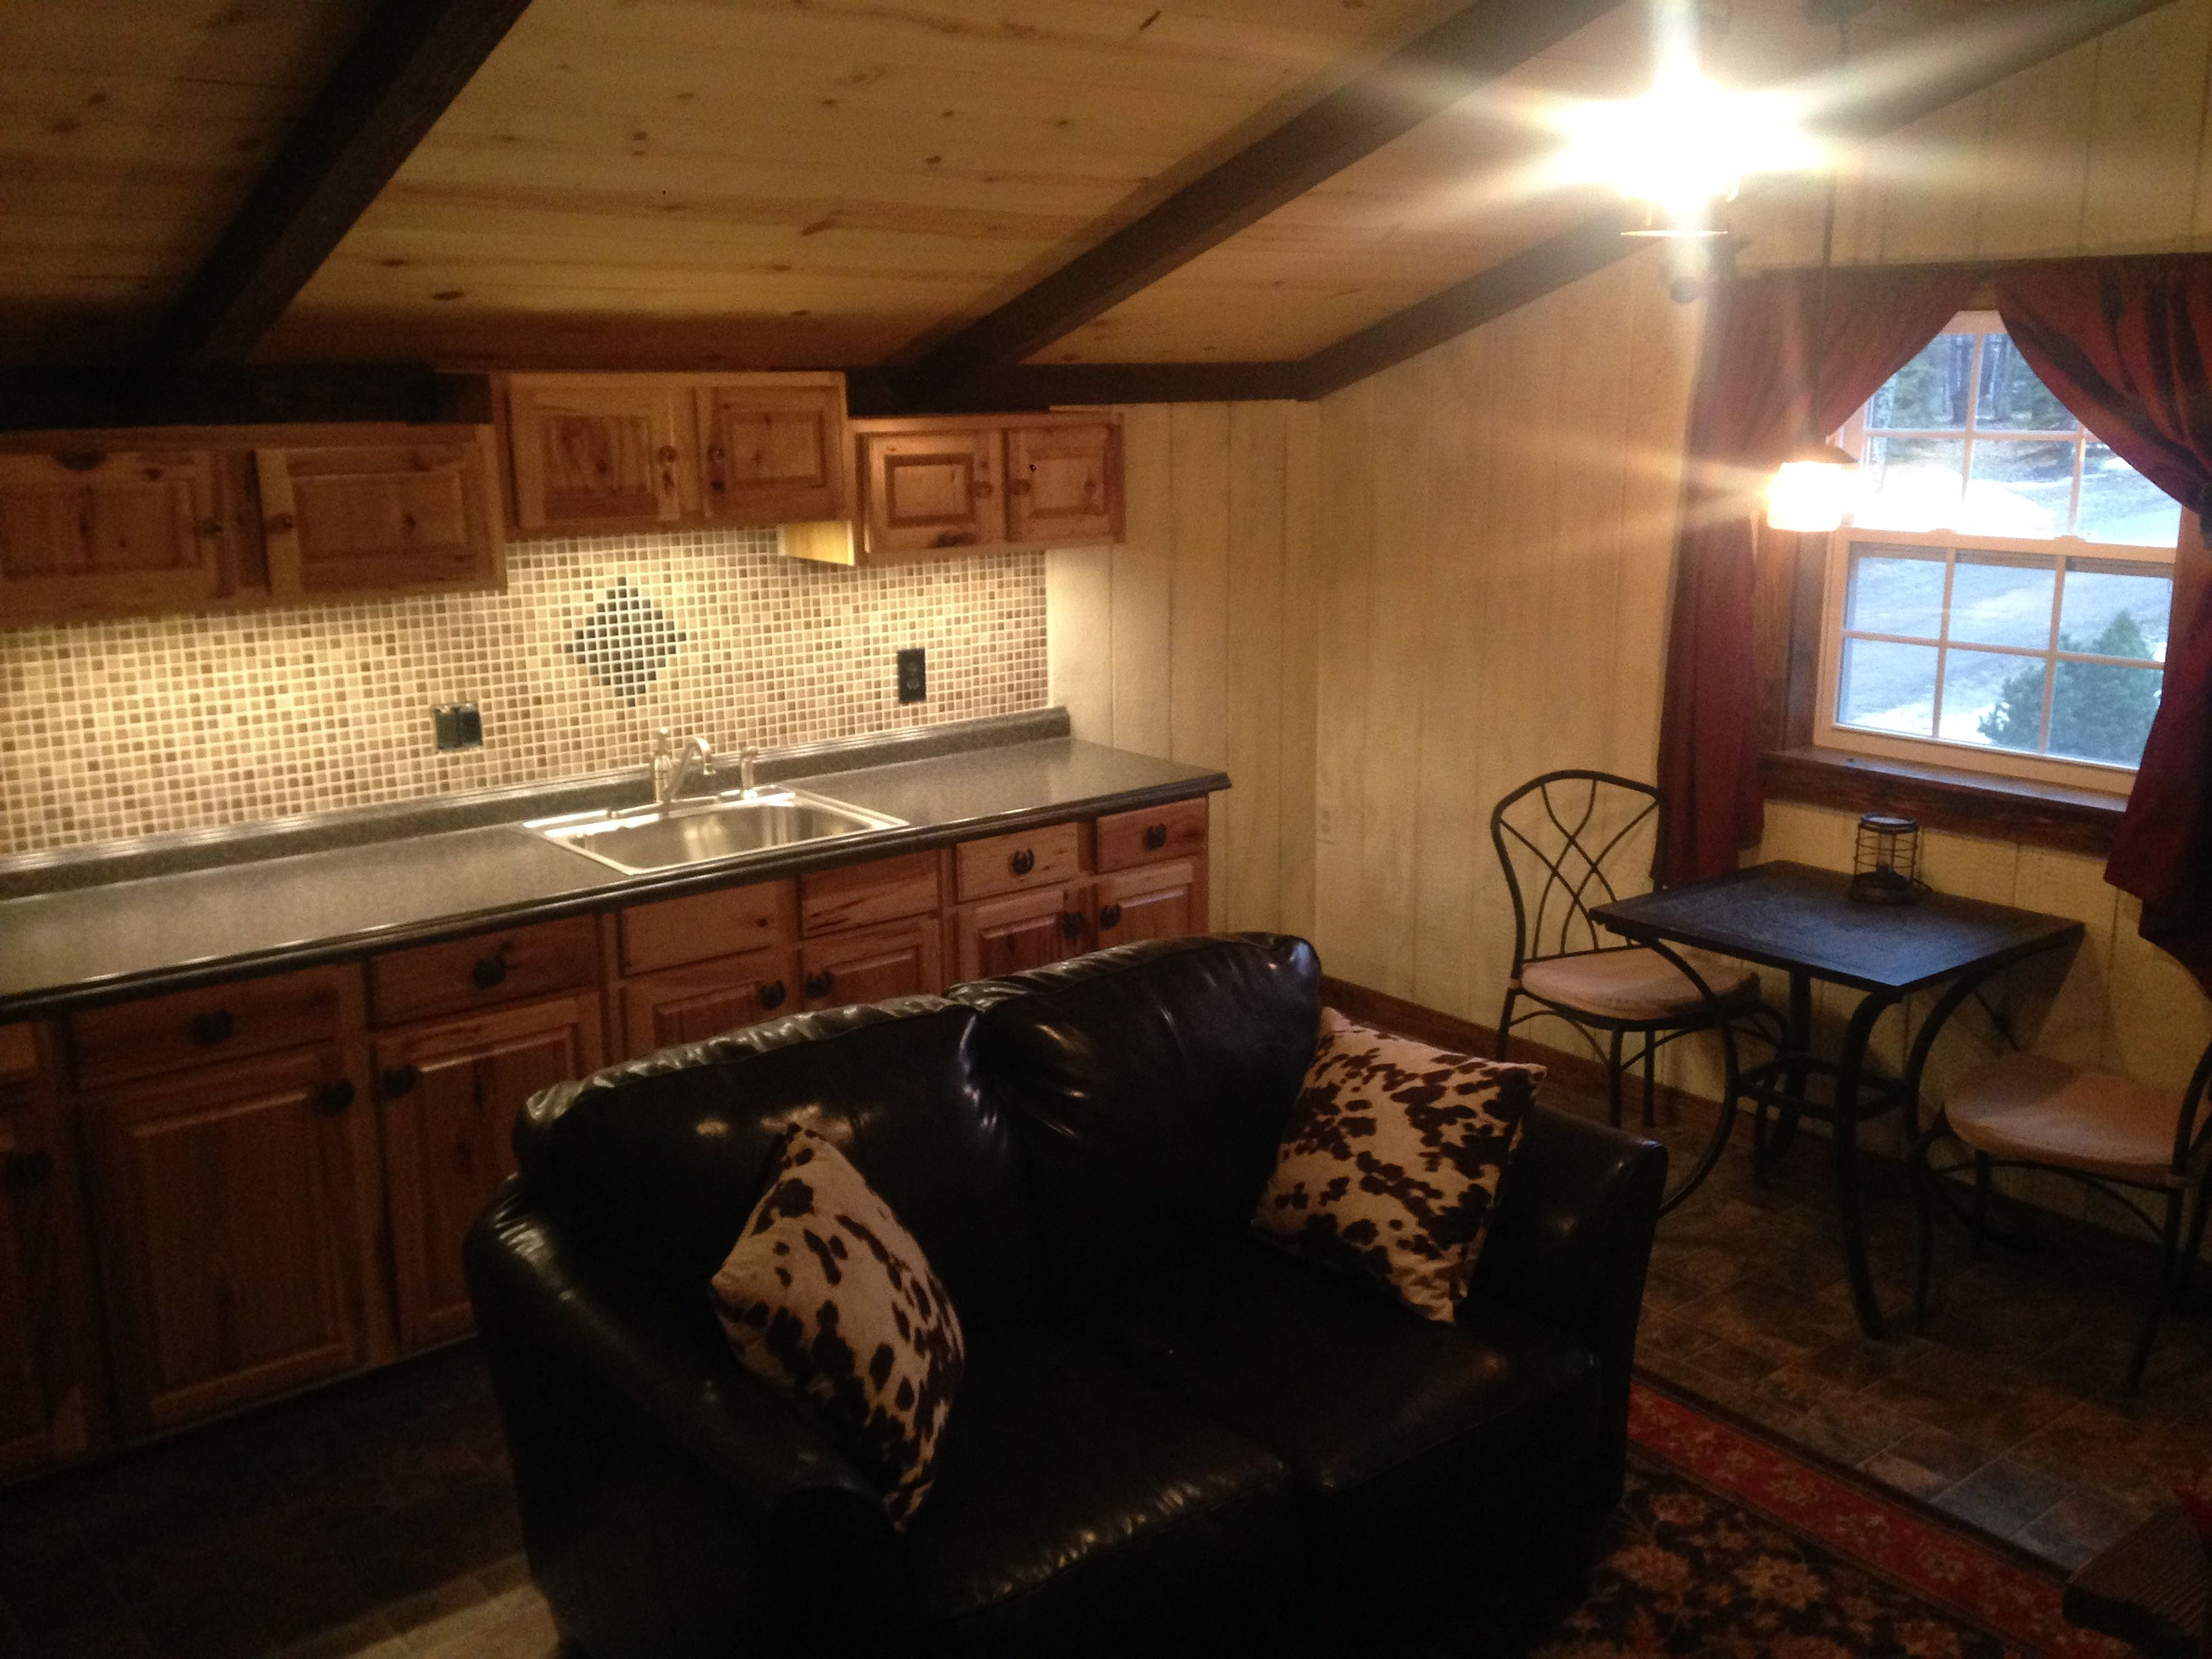 Barnes Performance Horses Quality Horse Training And Board - Barn apartment designs